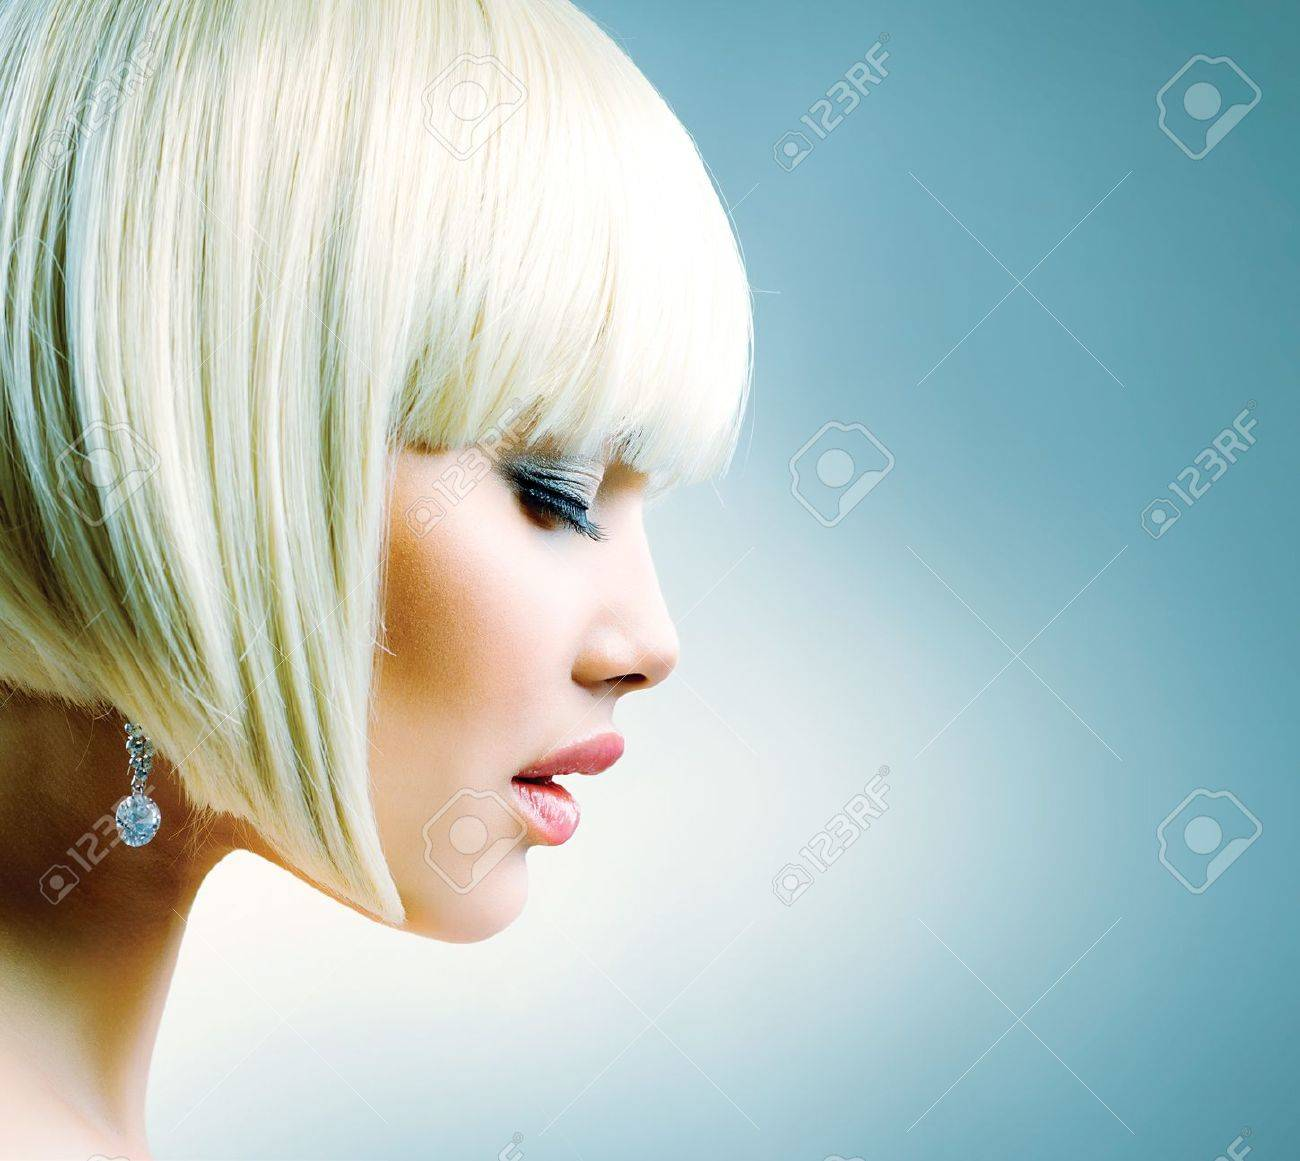 Beautiful Model with Short Blond hair Stock Photo - 18690596